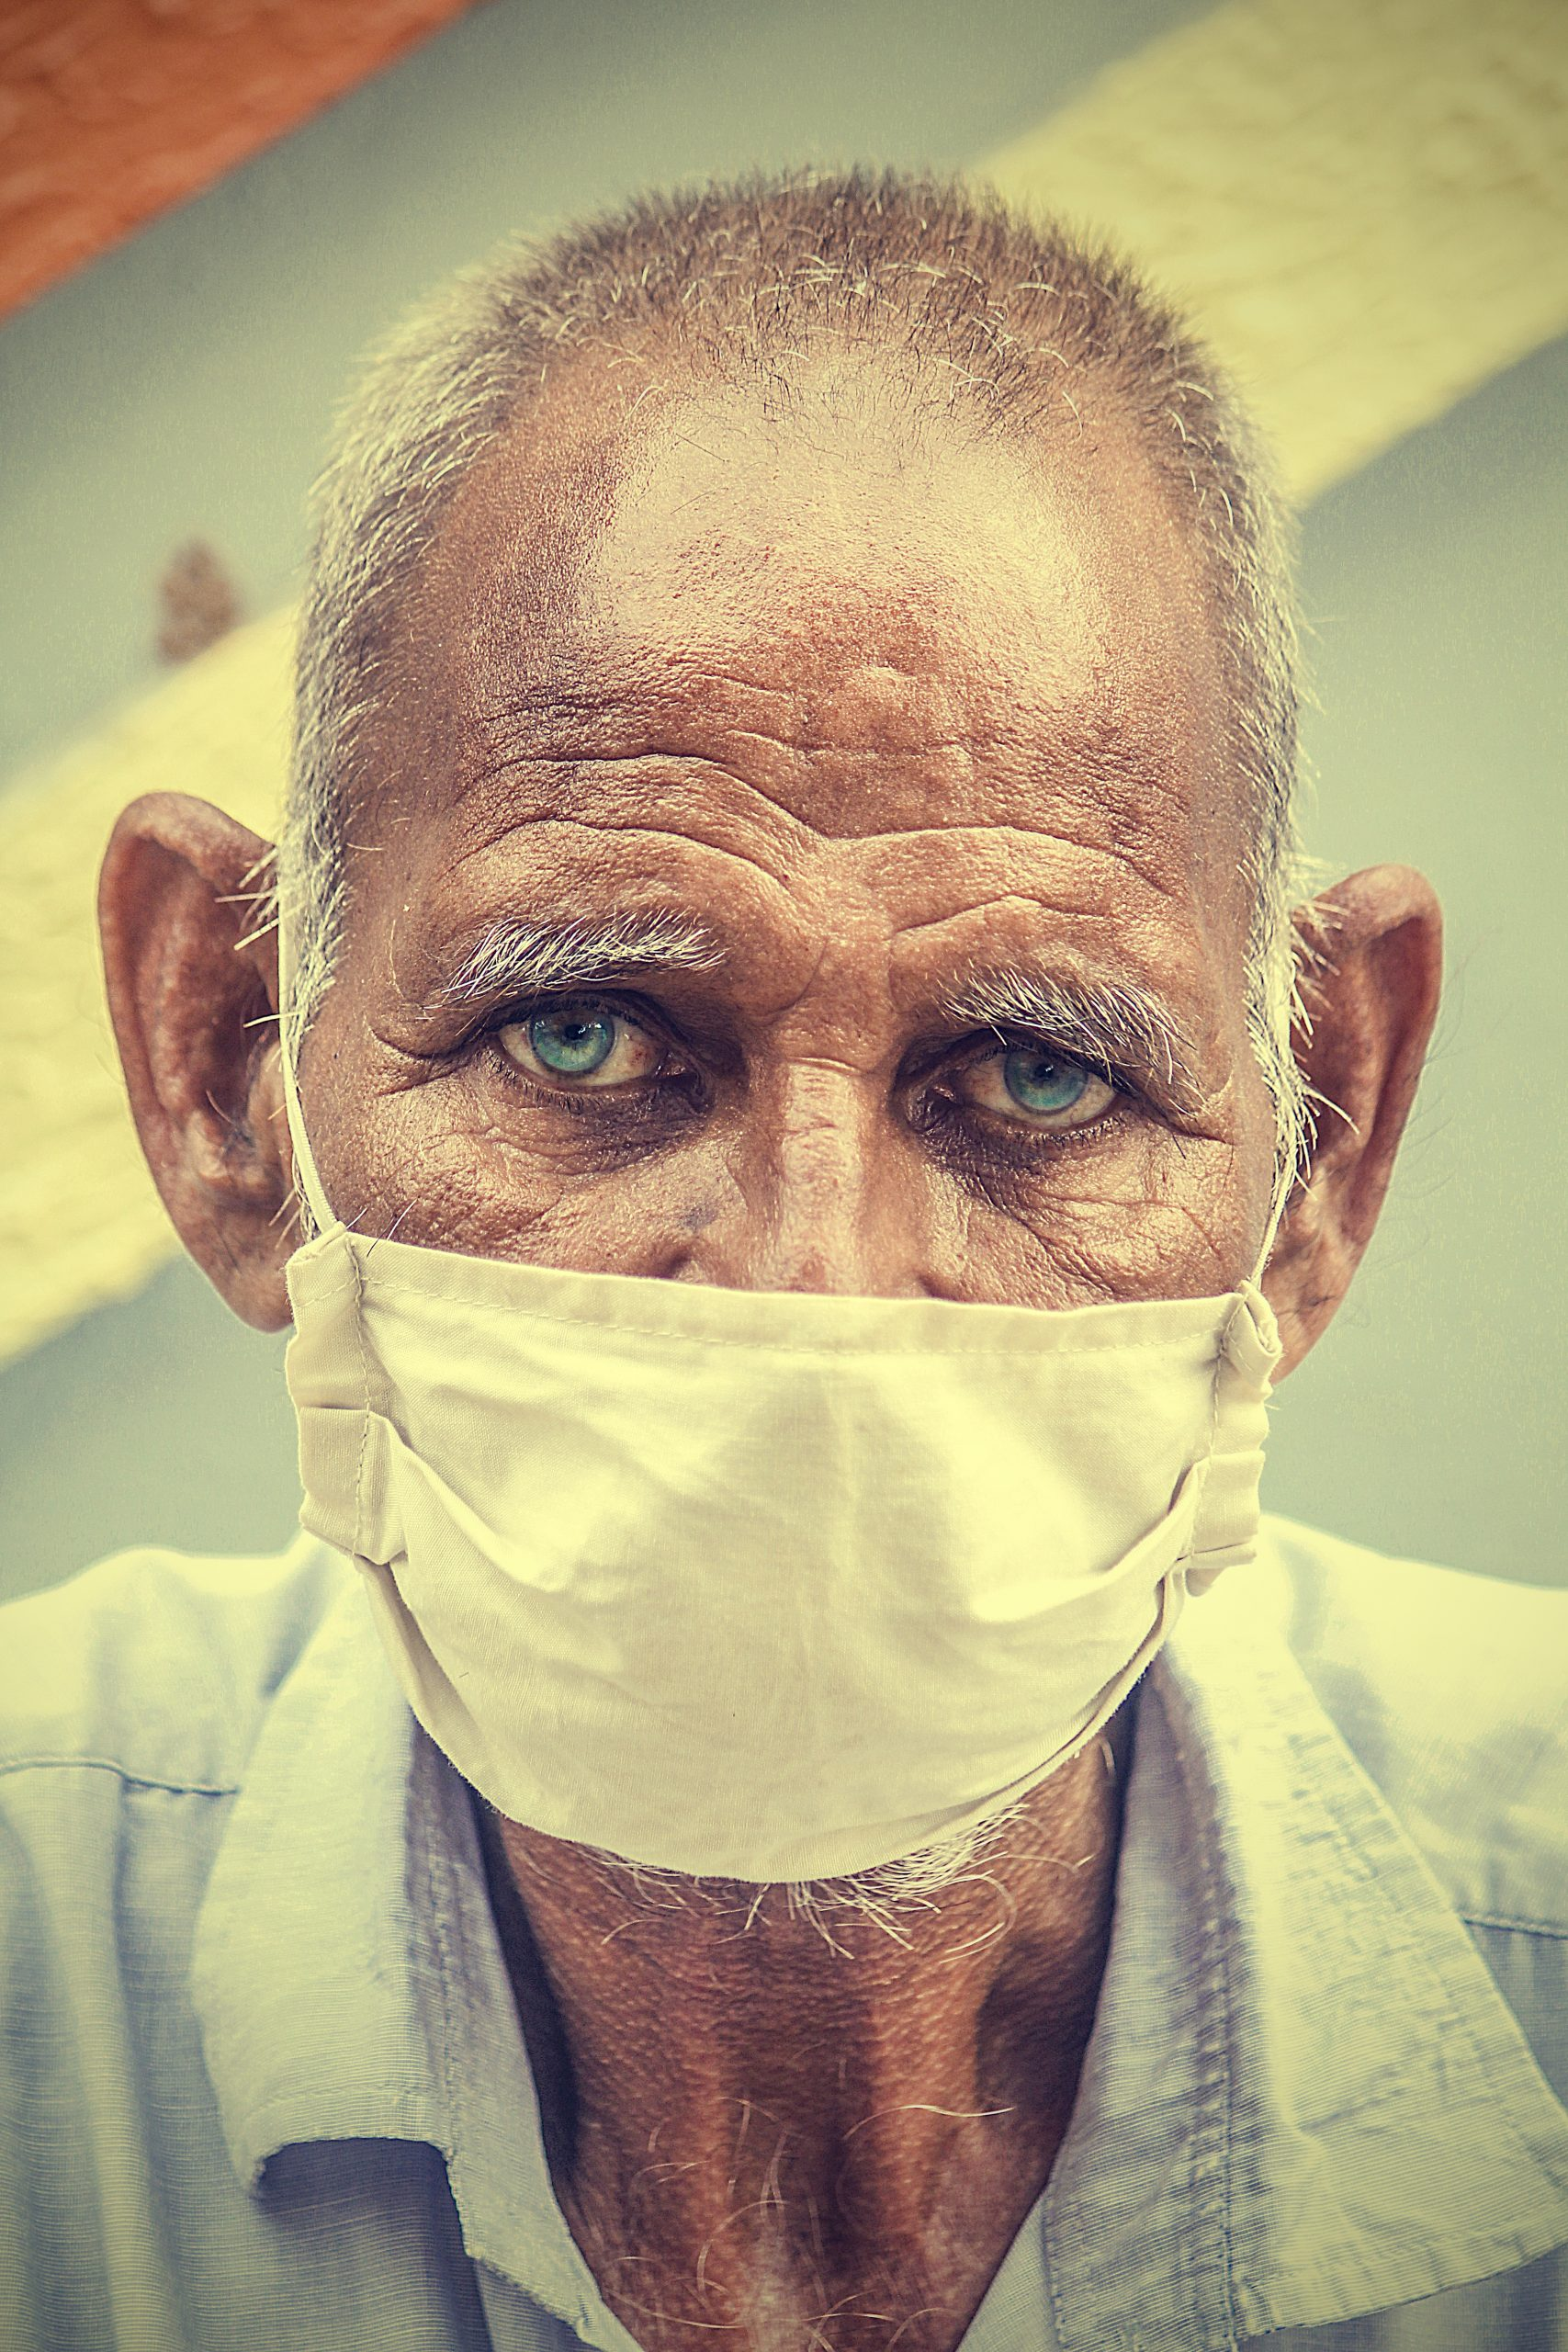 An old man with face cover